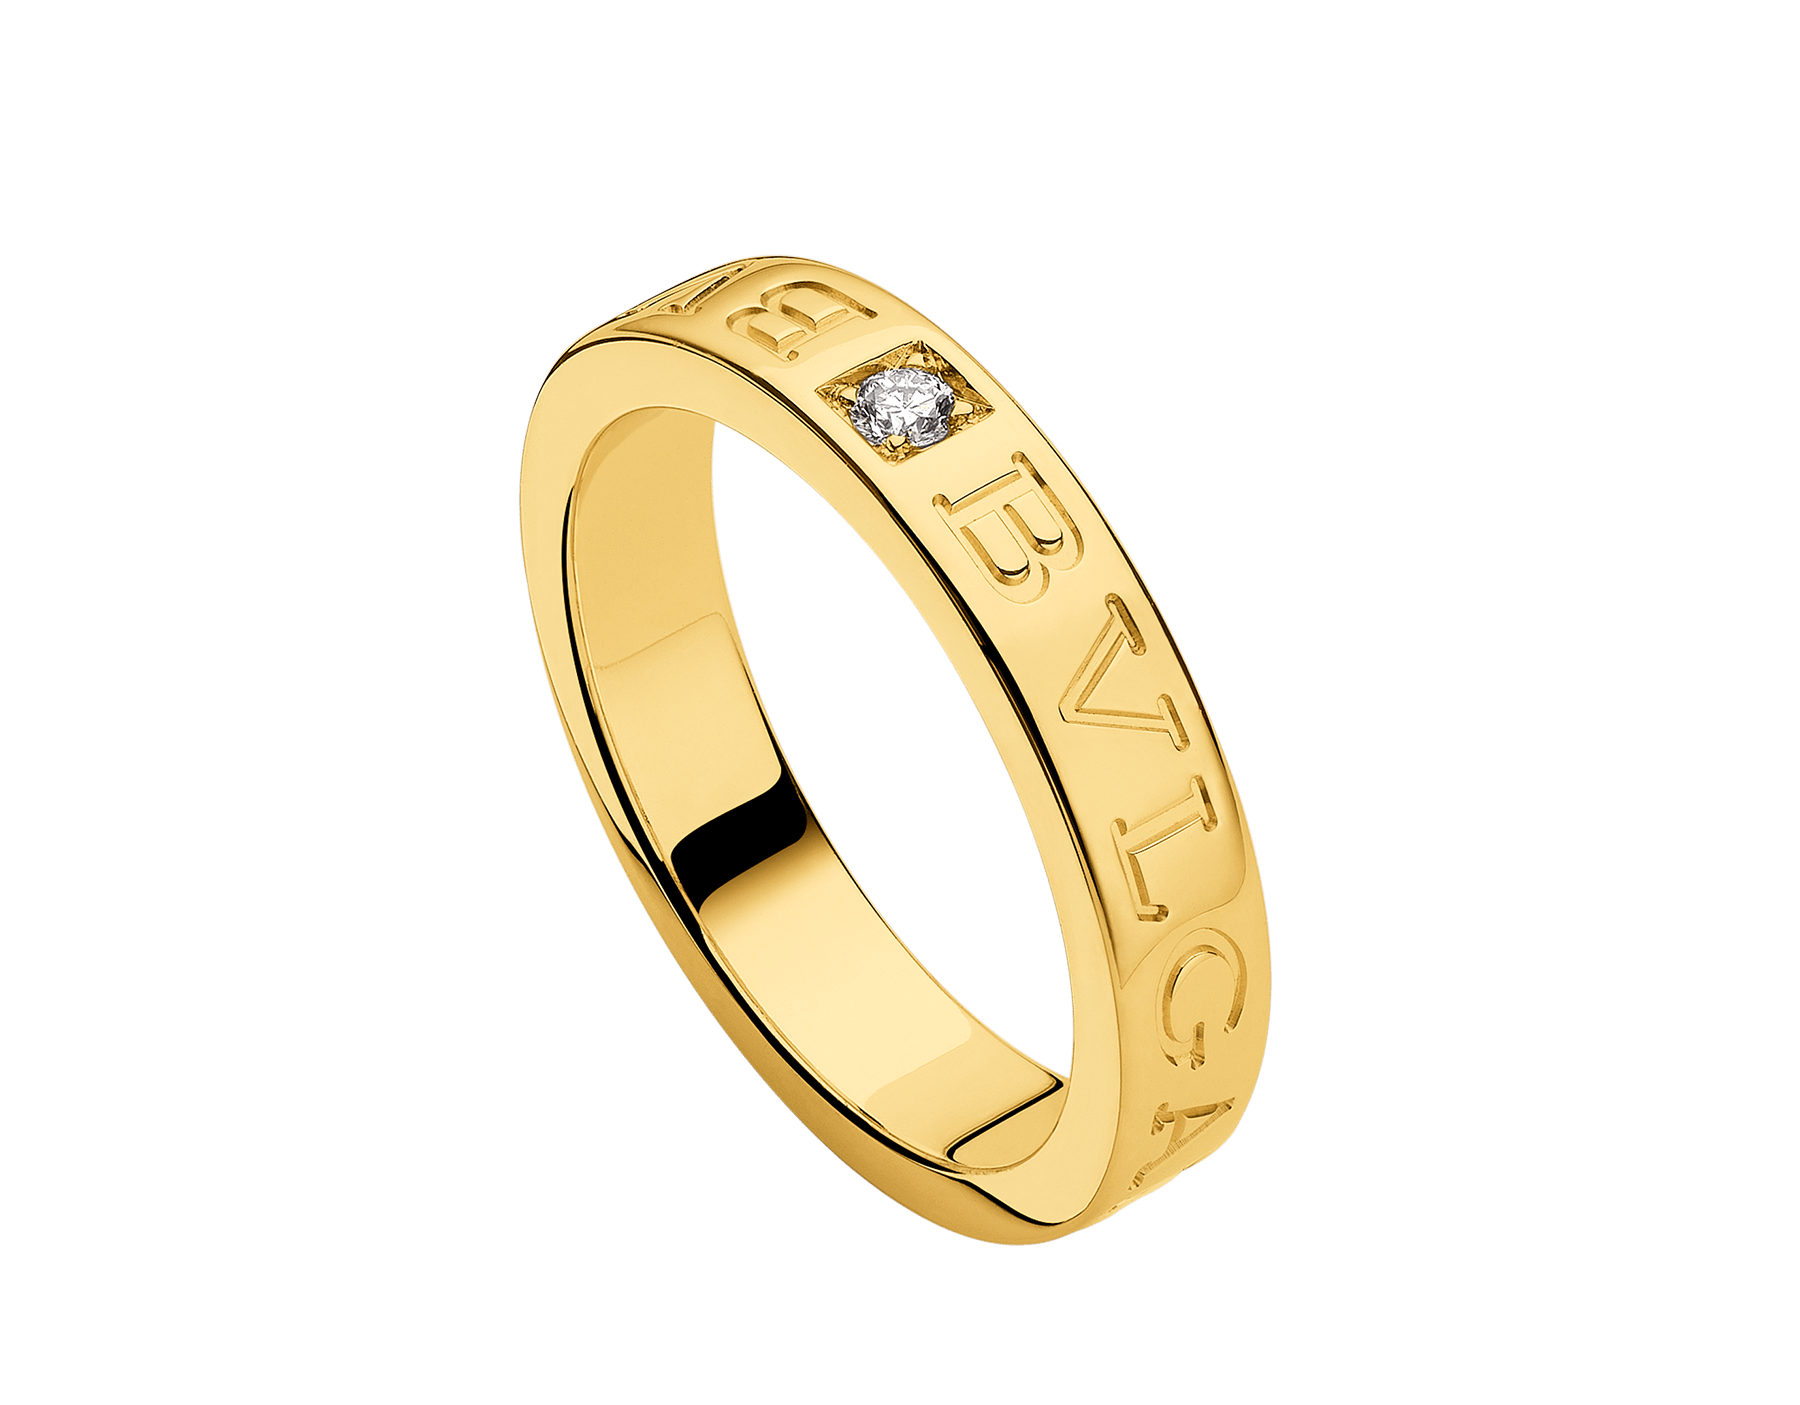 BVLGARI BVLGARI 18 kt yellow gold ring set with a diamond AN854462 image 1